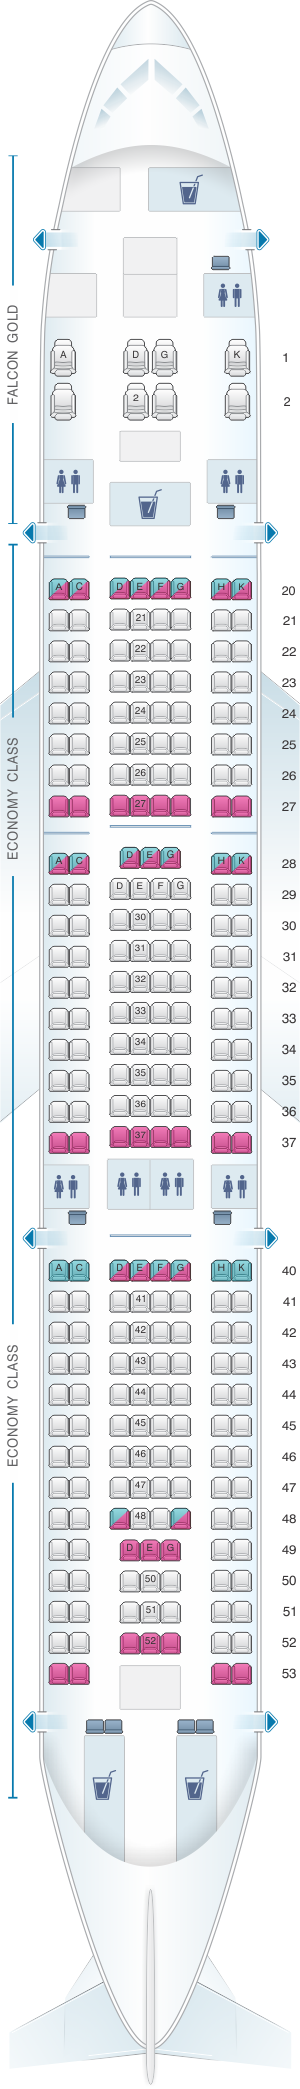 Seat map for Gulf Air Airbus A330 200 A